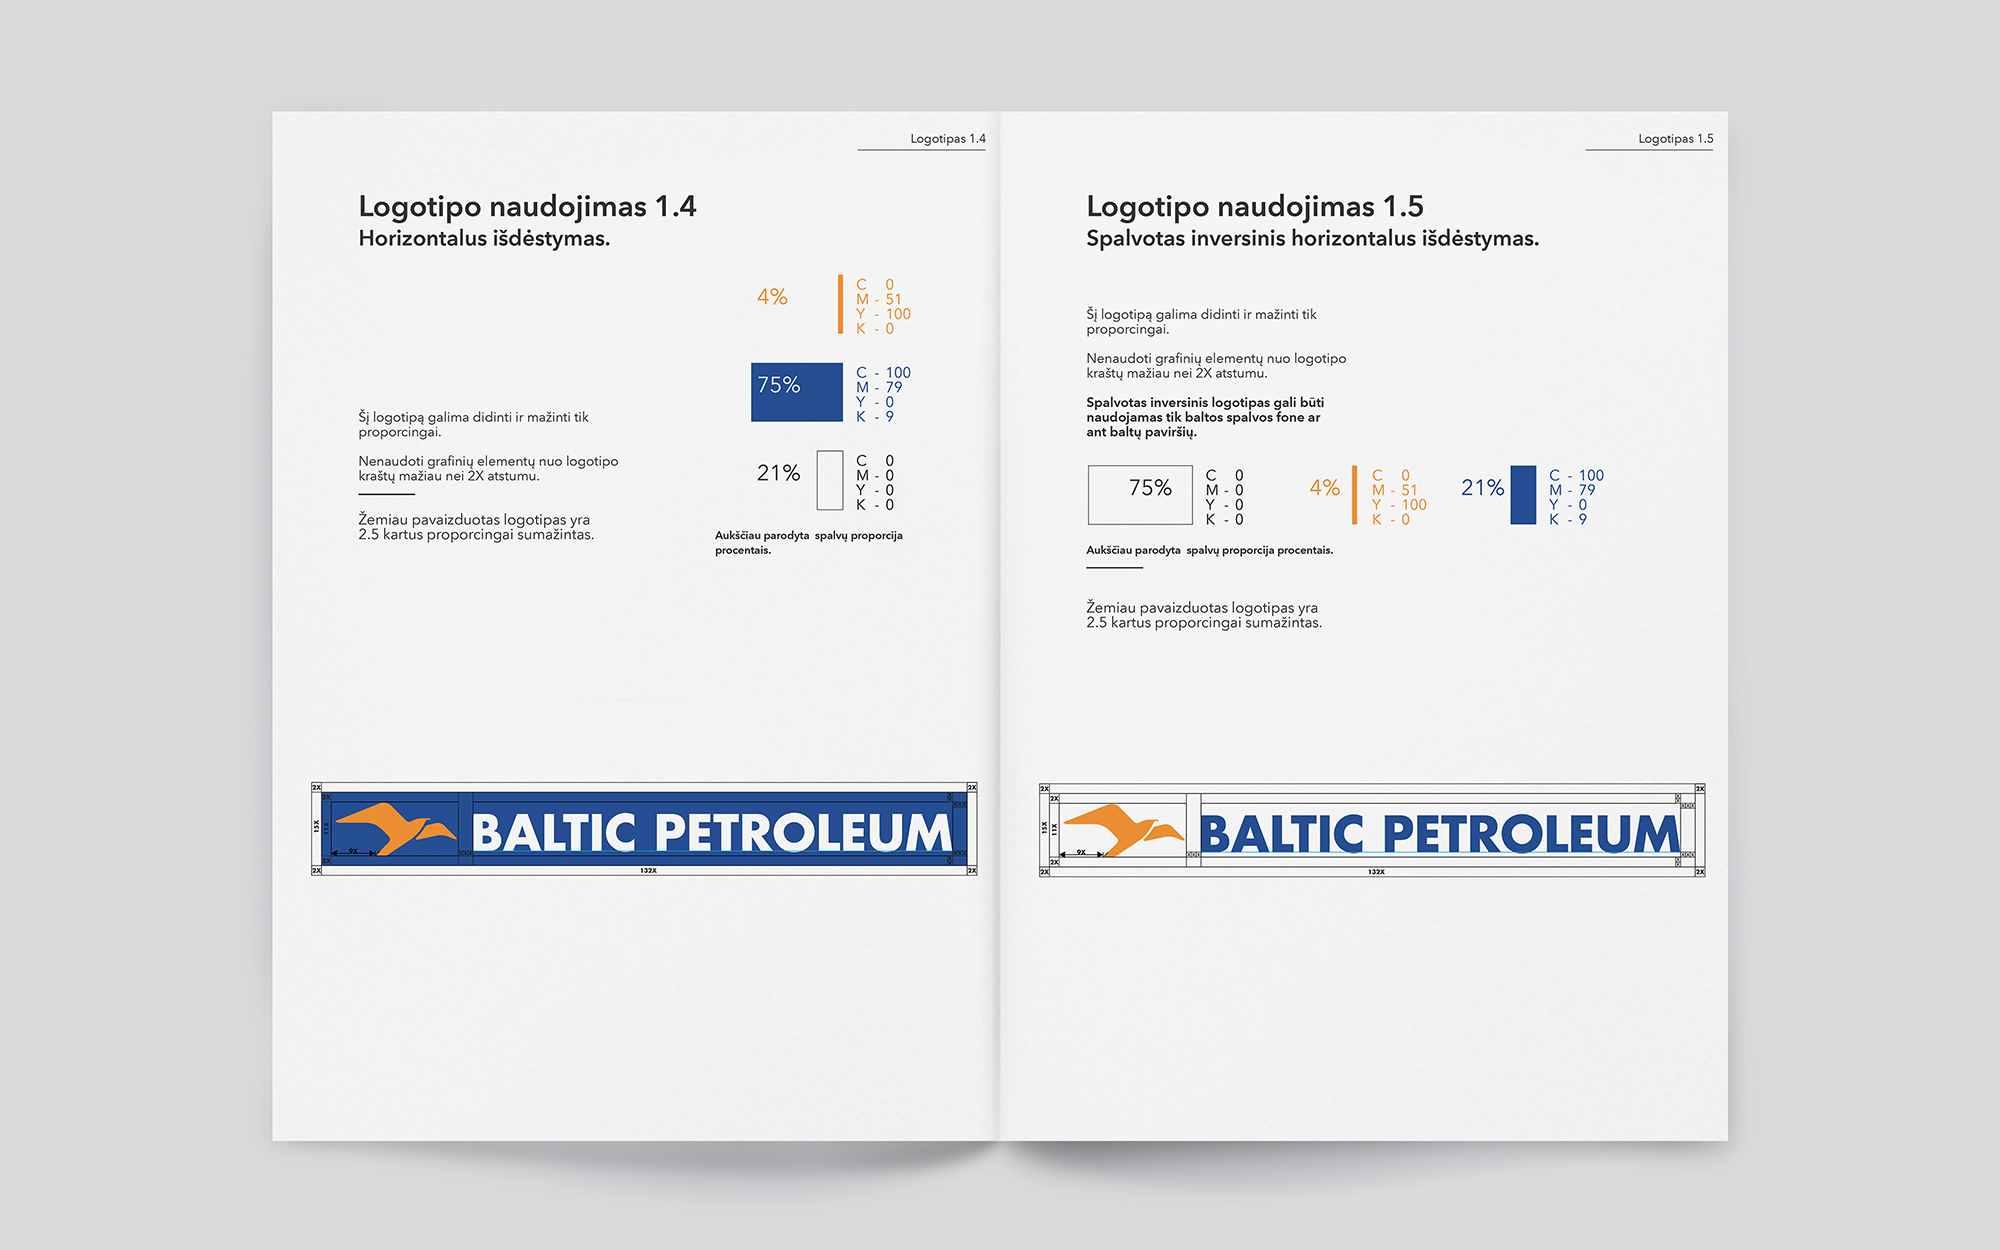 Baltic Petroleum logo horizontal